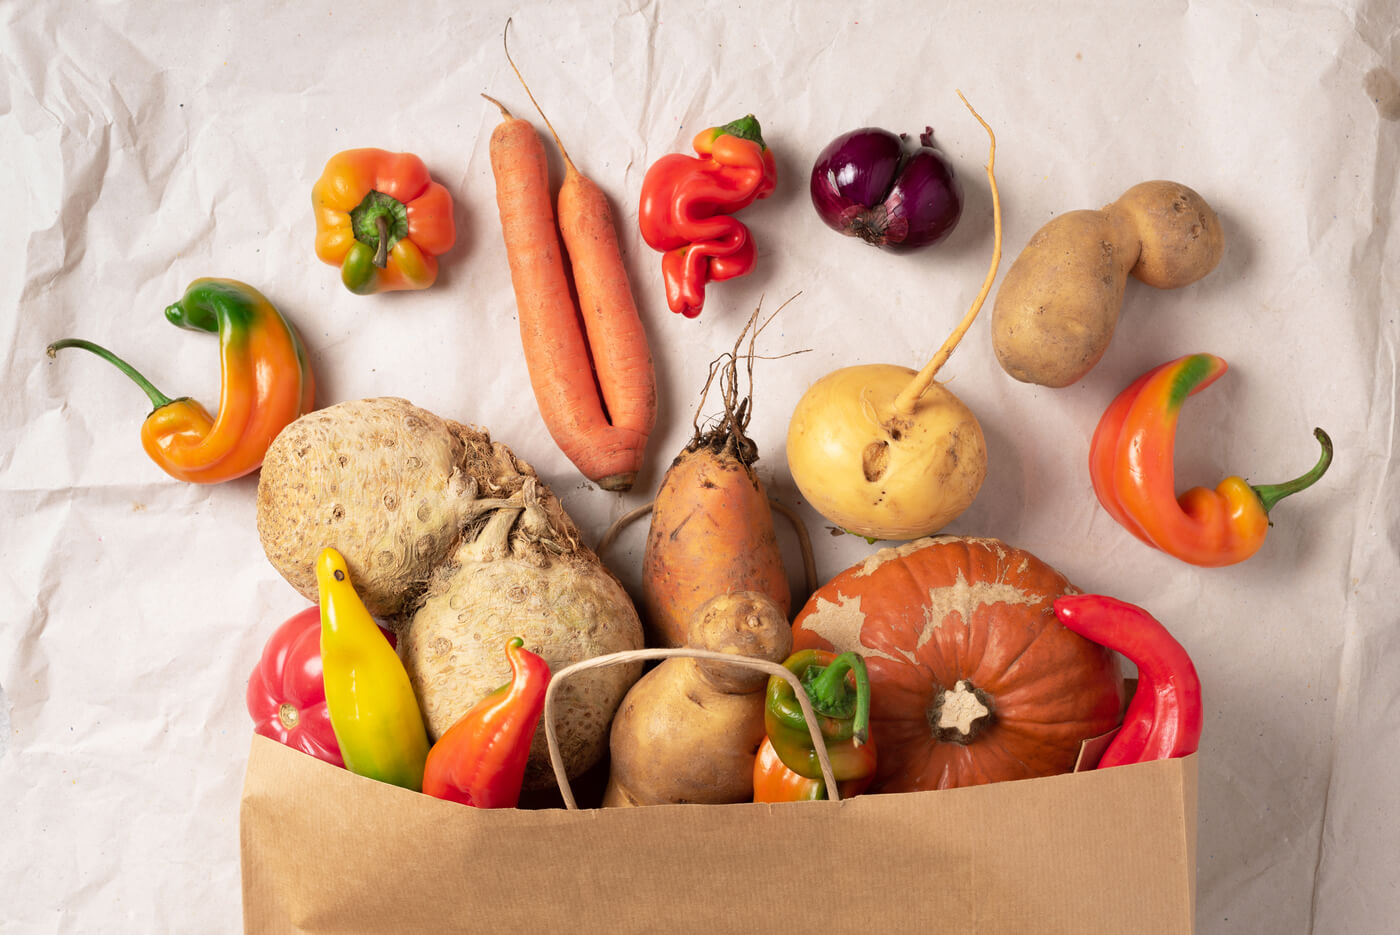 Imperfect fruits and vegetables: Is it time not to turn a blind eye yet?